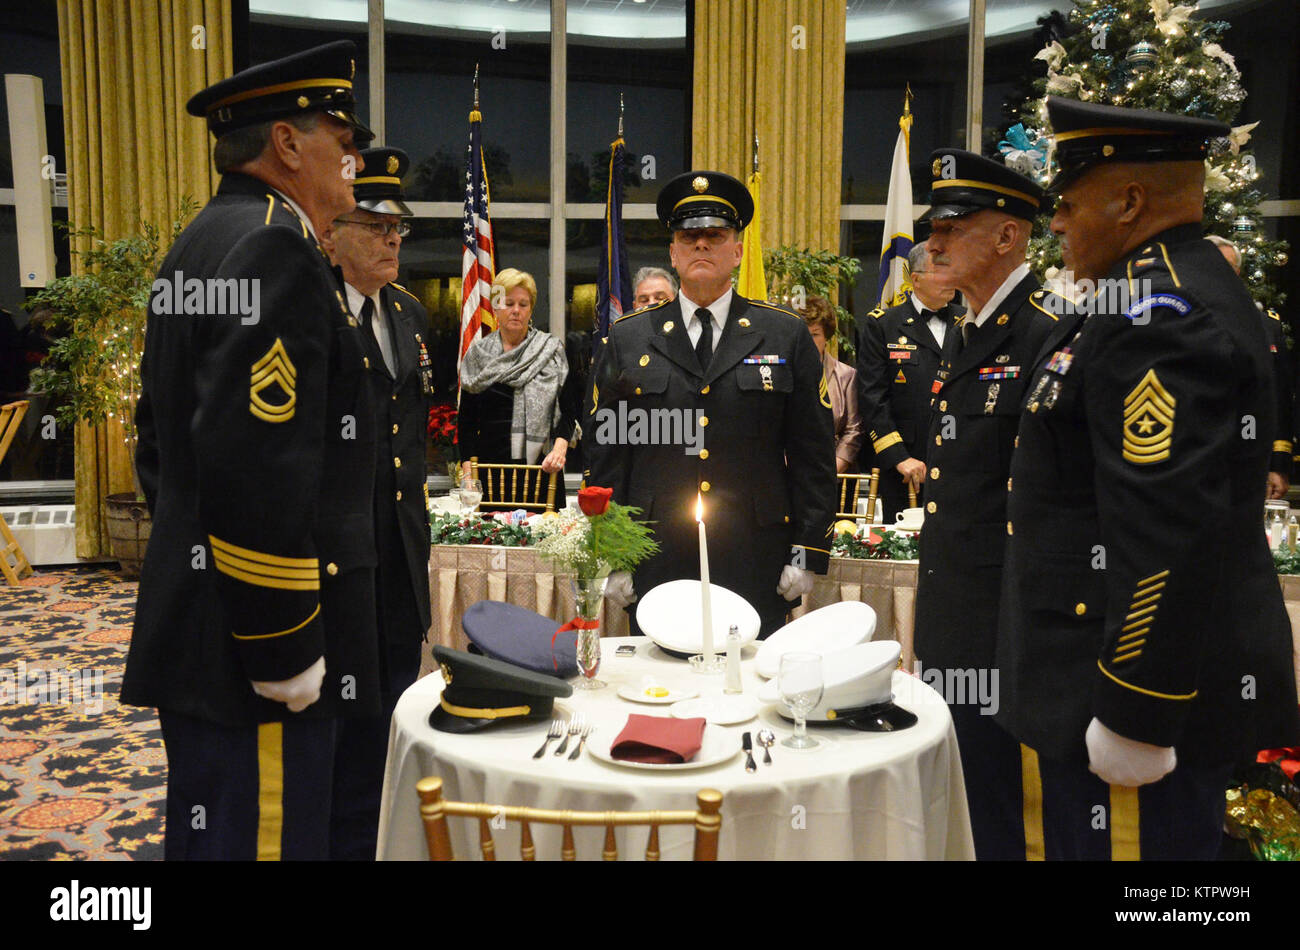 West Point, NY – On December 4th 2015, the New York Guard and the New York Naval Militia held their annual holiday Stock Photo